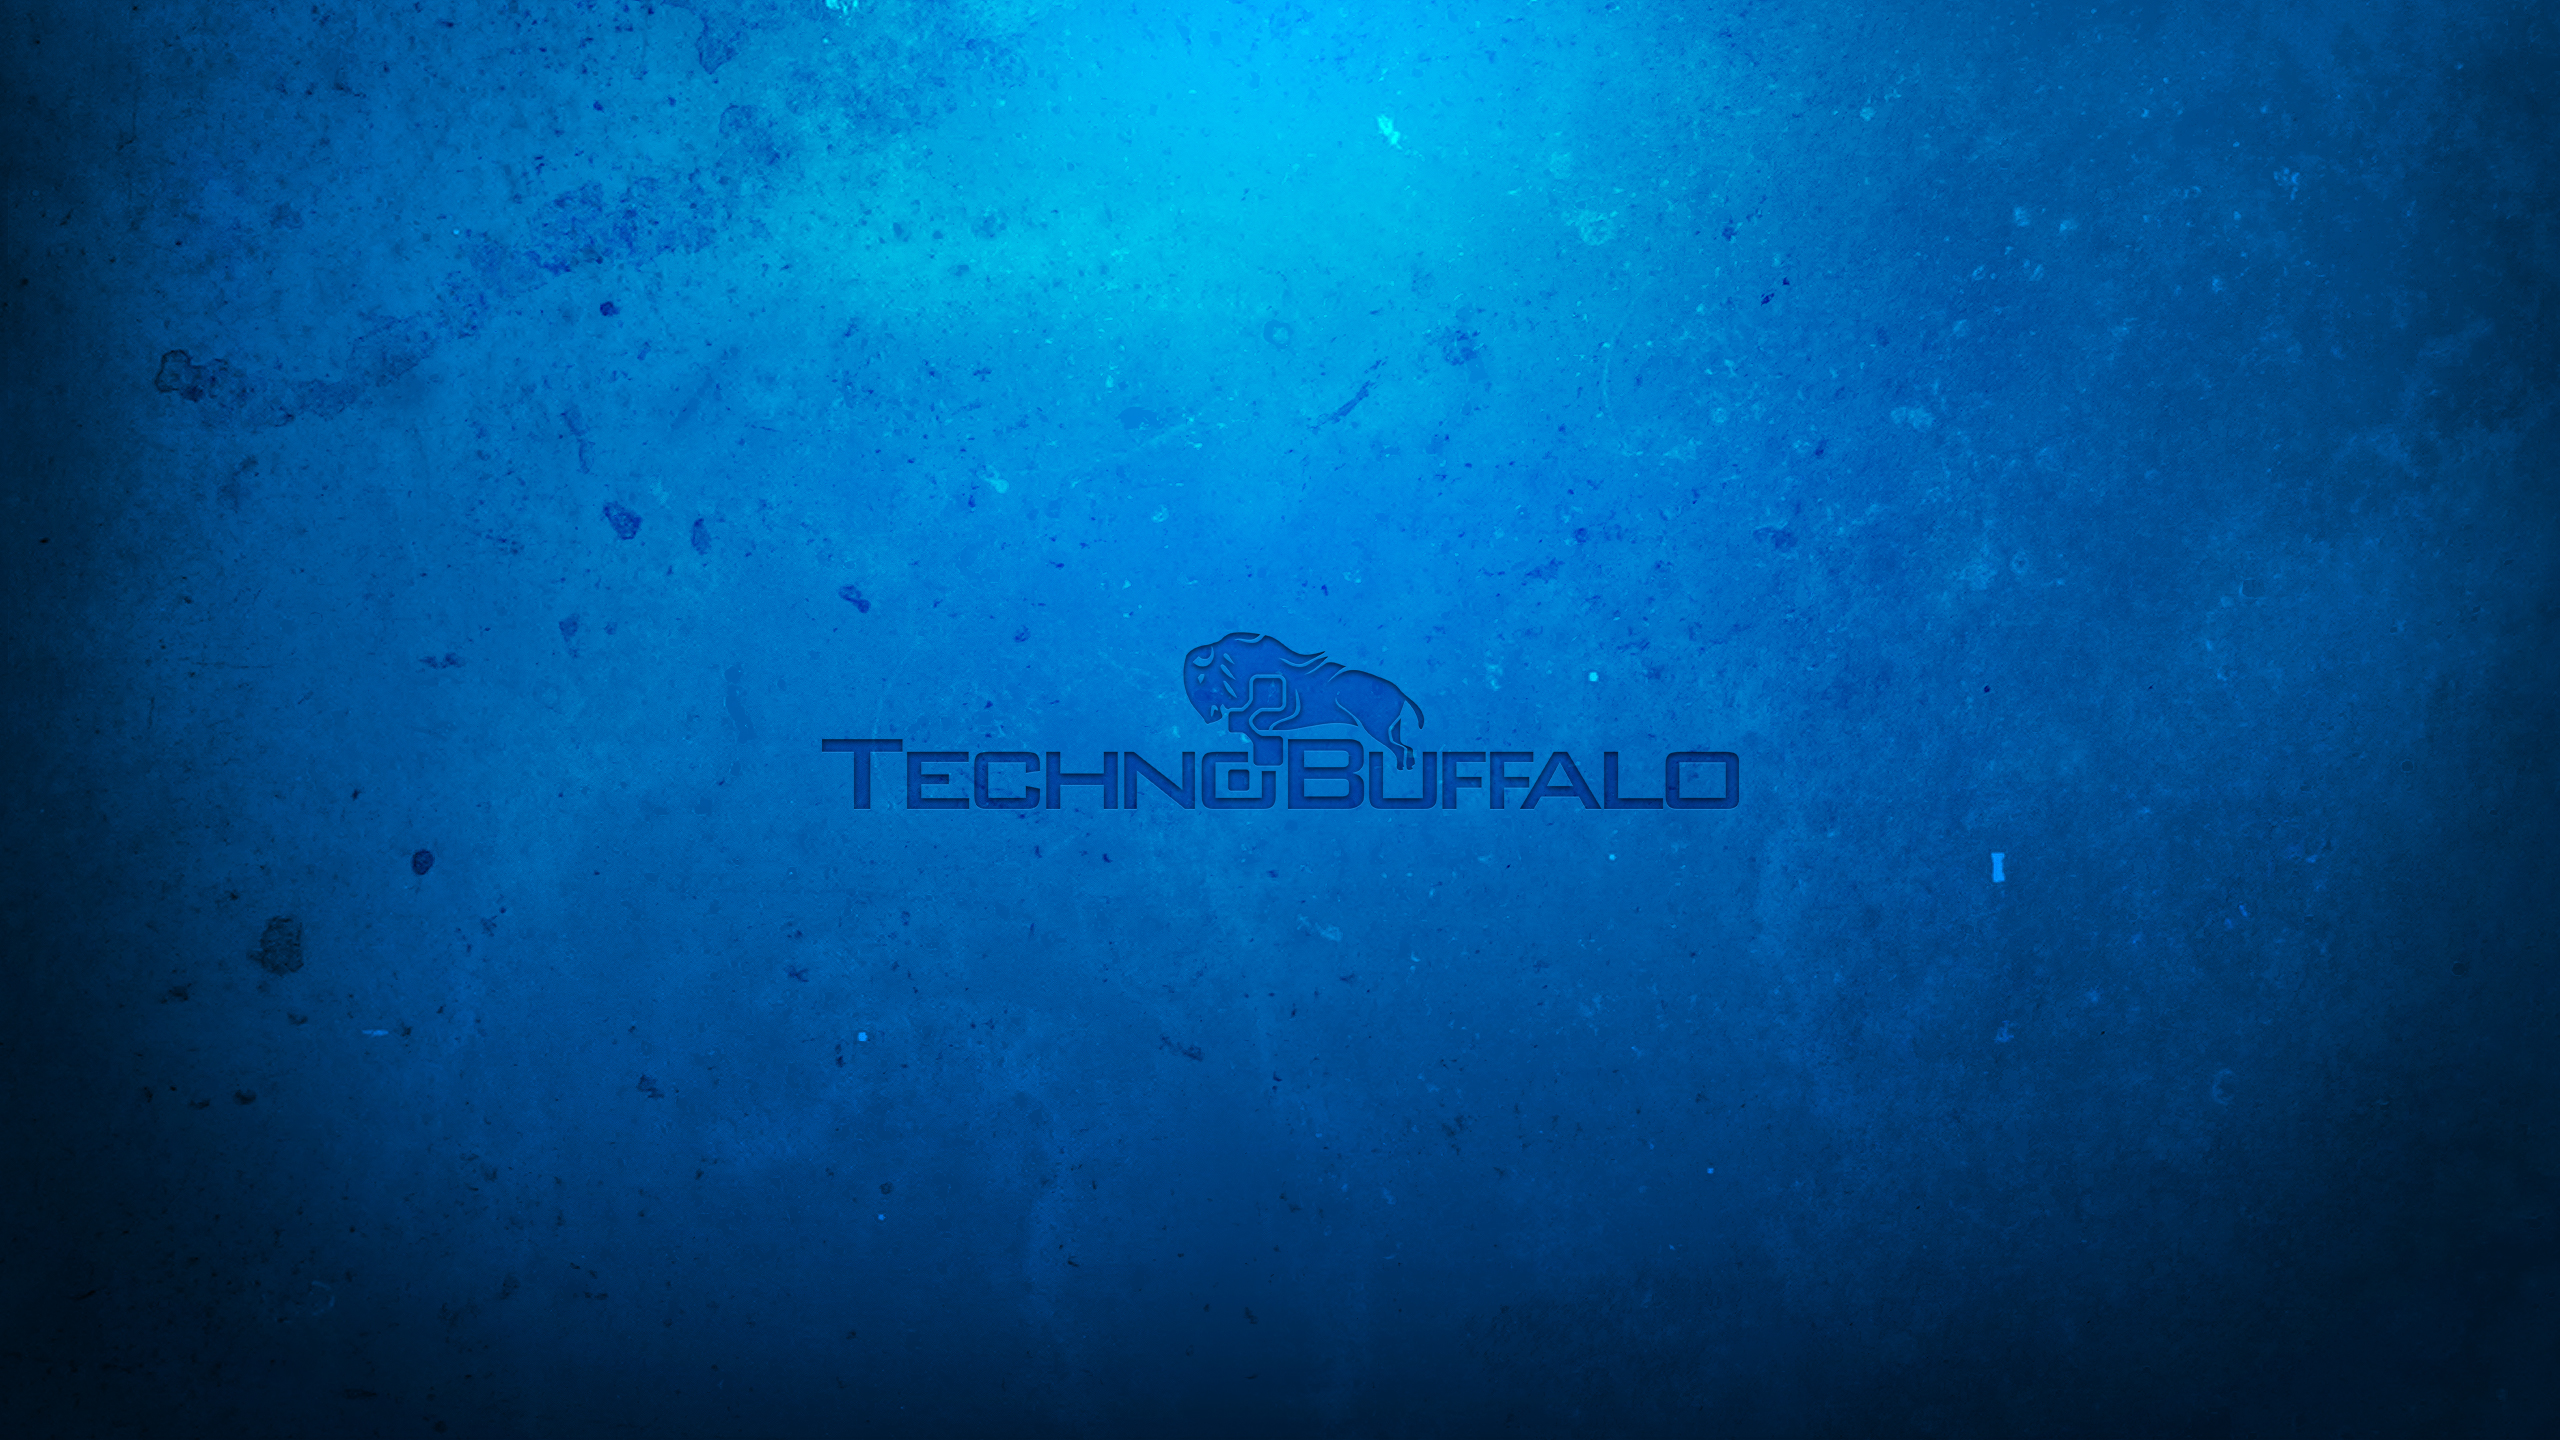 Blue Technobuffalo Wallpaper 2560x1440